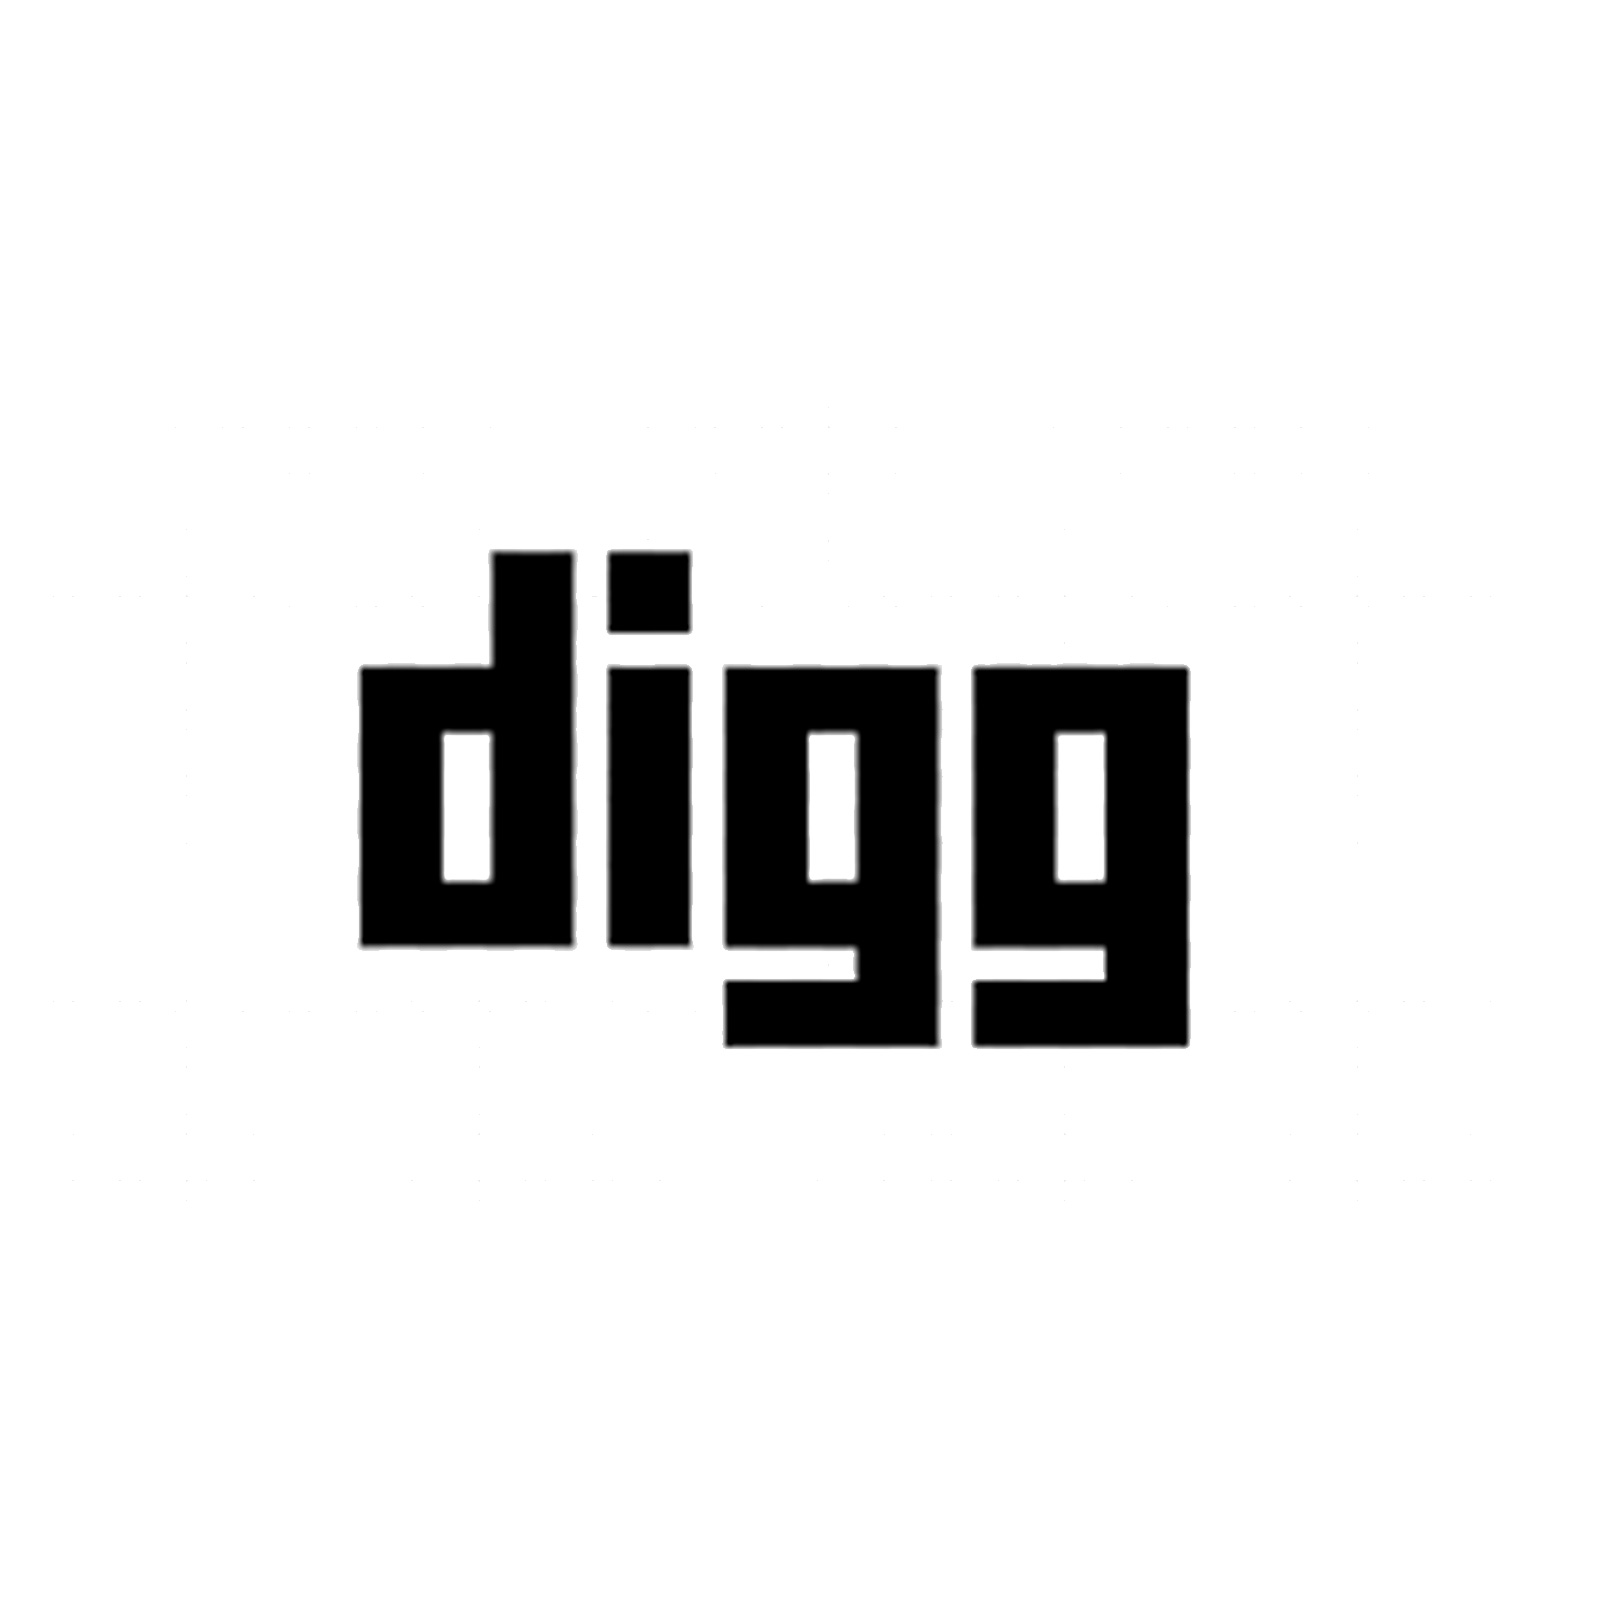 Digg is a news aggregator with a curated front page, aiming to select stories specifically for the Internet audience such as science, trending political issues, and viral Internet issues.